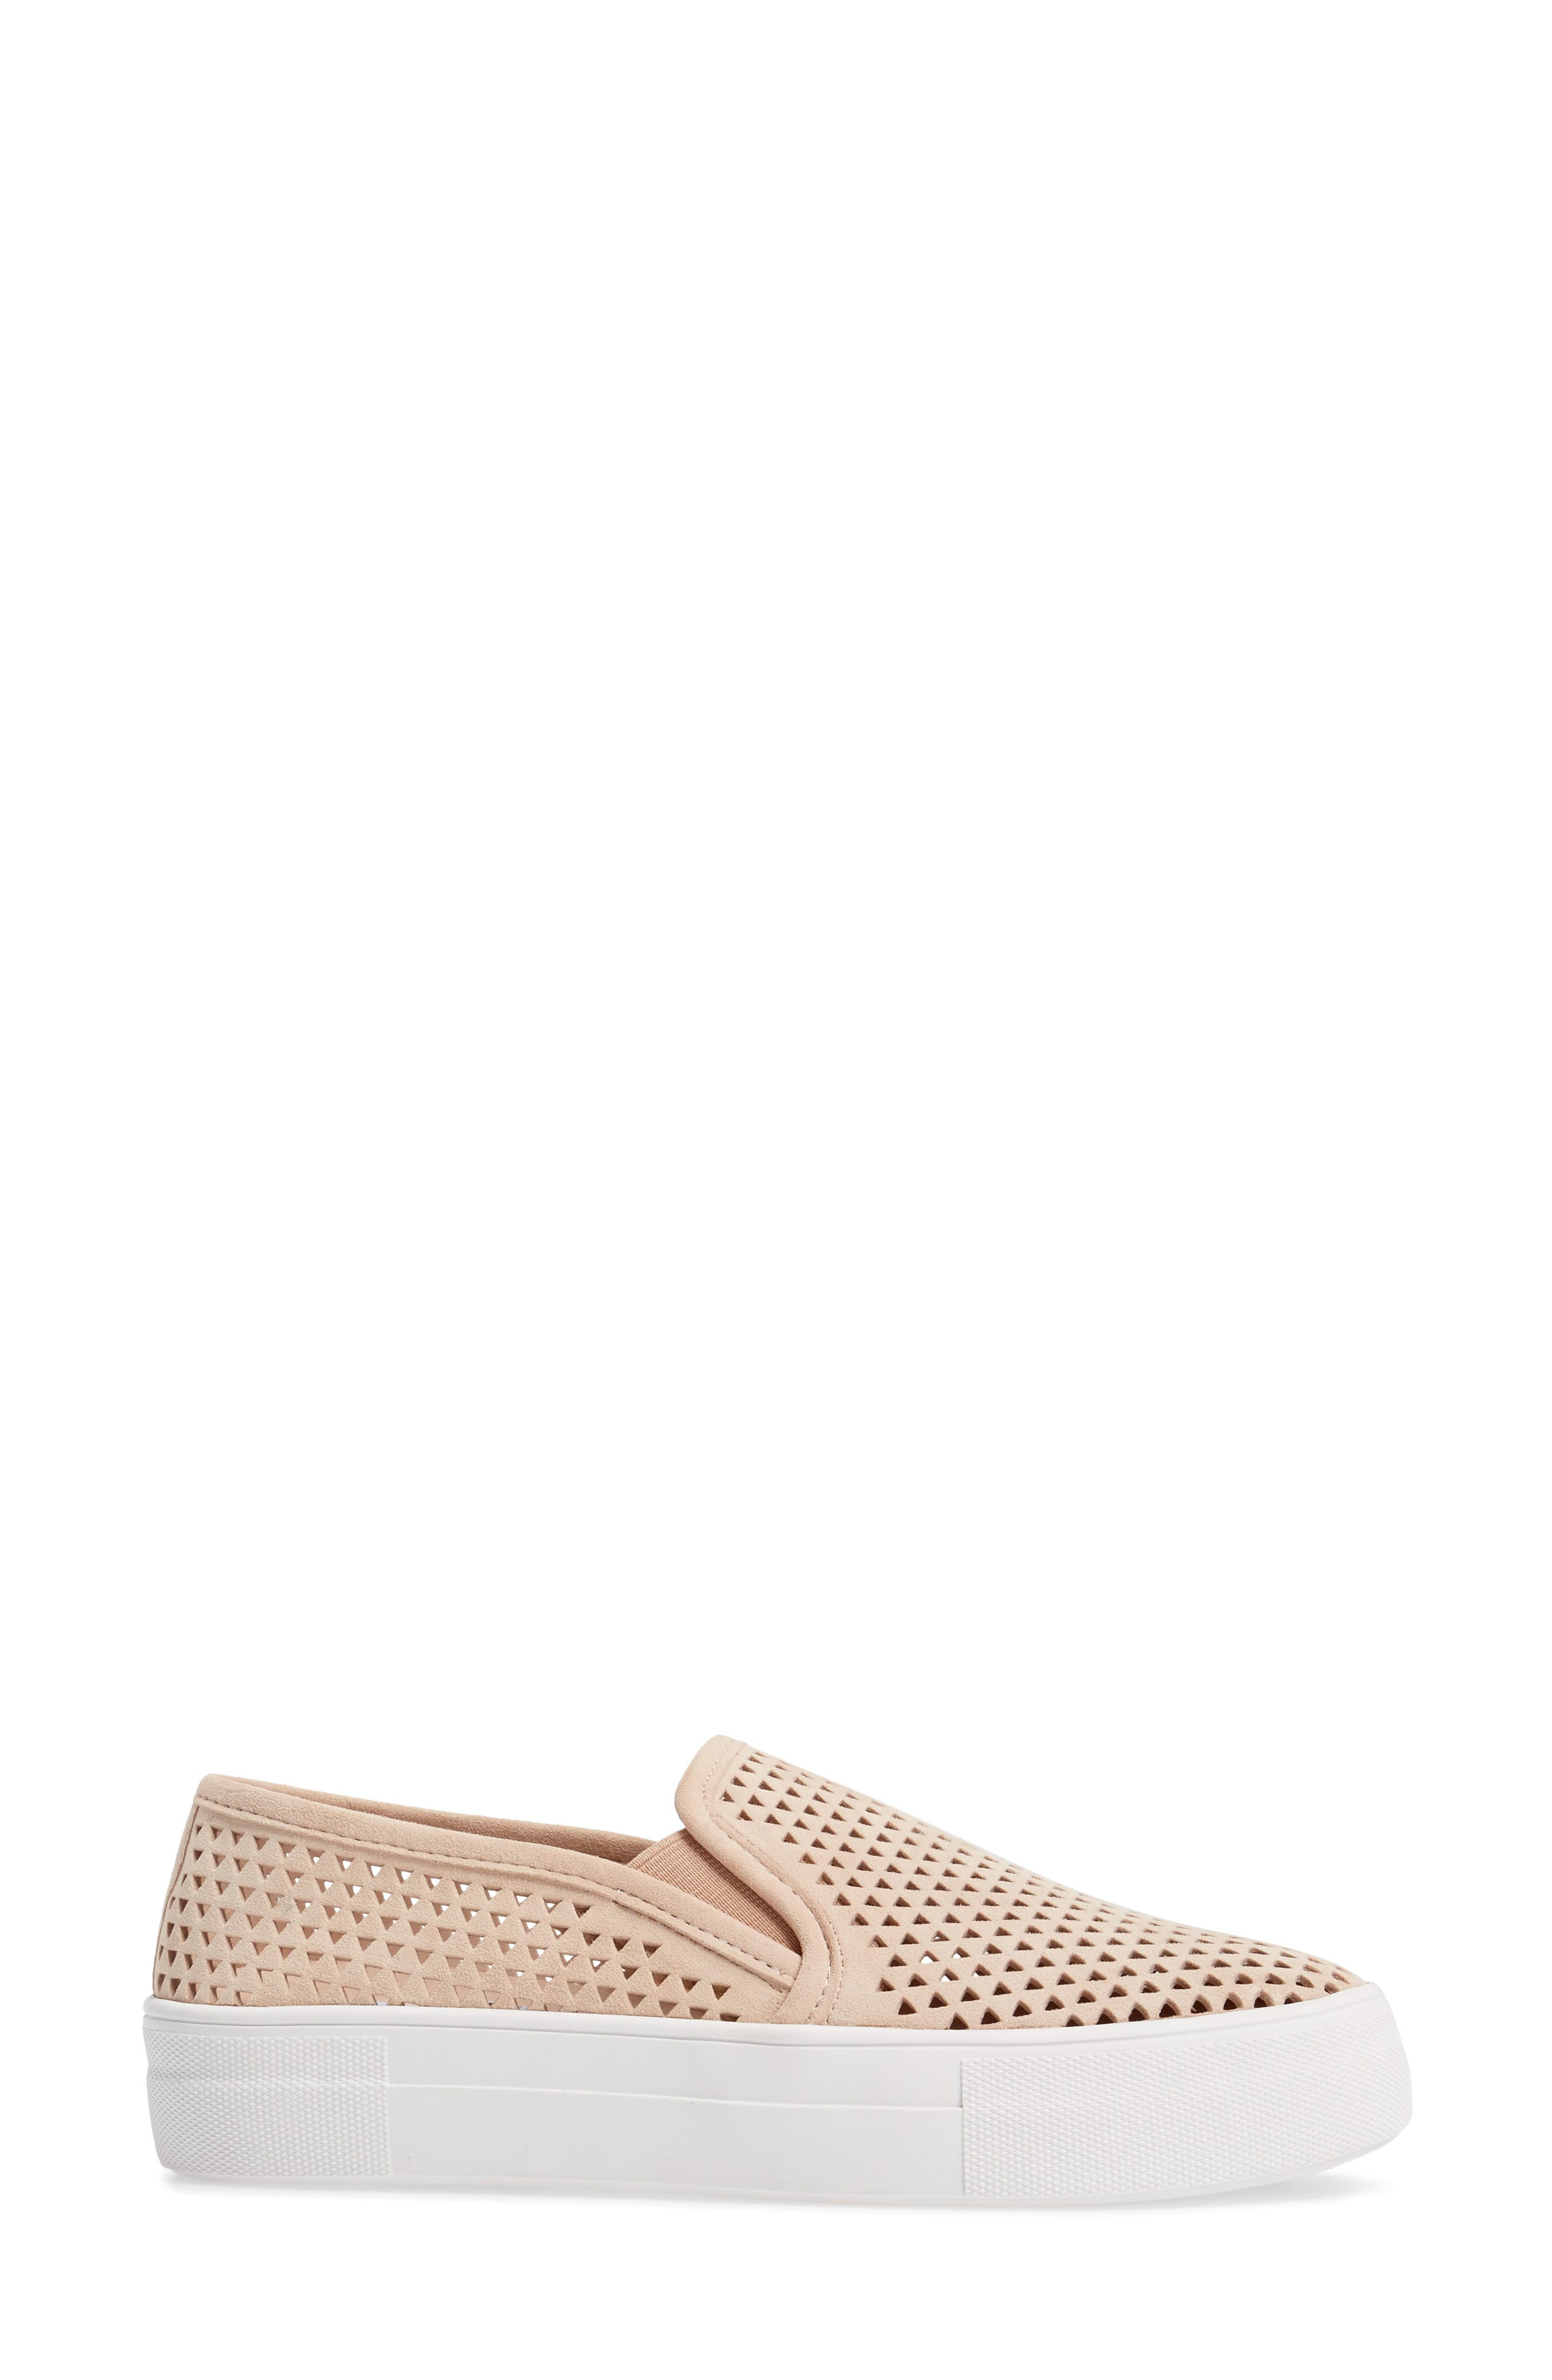 Gills Perforated Slip-On Sneaker,                             Alternate thumbnail 3, color,                             Natural Suede